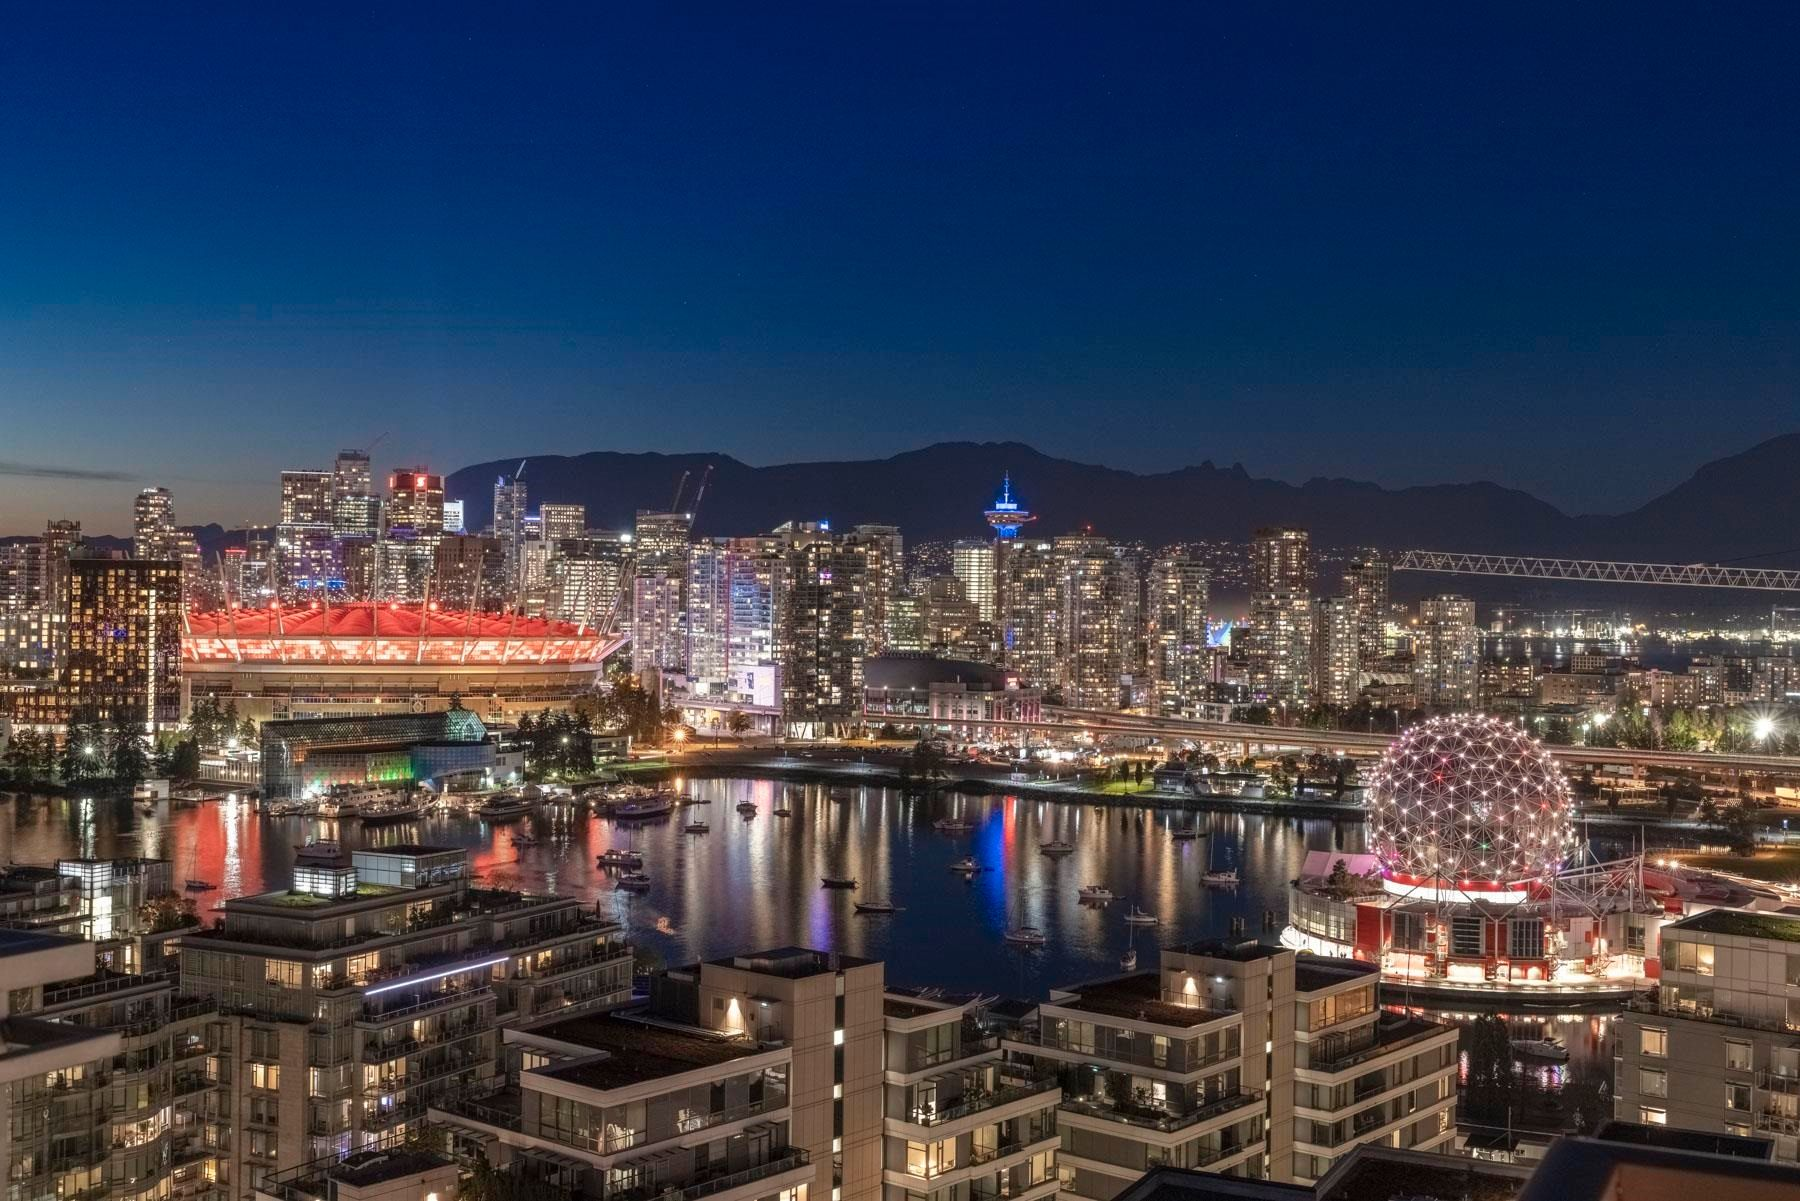 """Main Photo: 2501 1775 QUEBEC Street in Vancouver: Mount Pleasant VE Condo for sale in """"Opsal"""" (Vancouver East)  : MLS®# R2625232"""